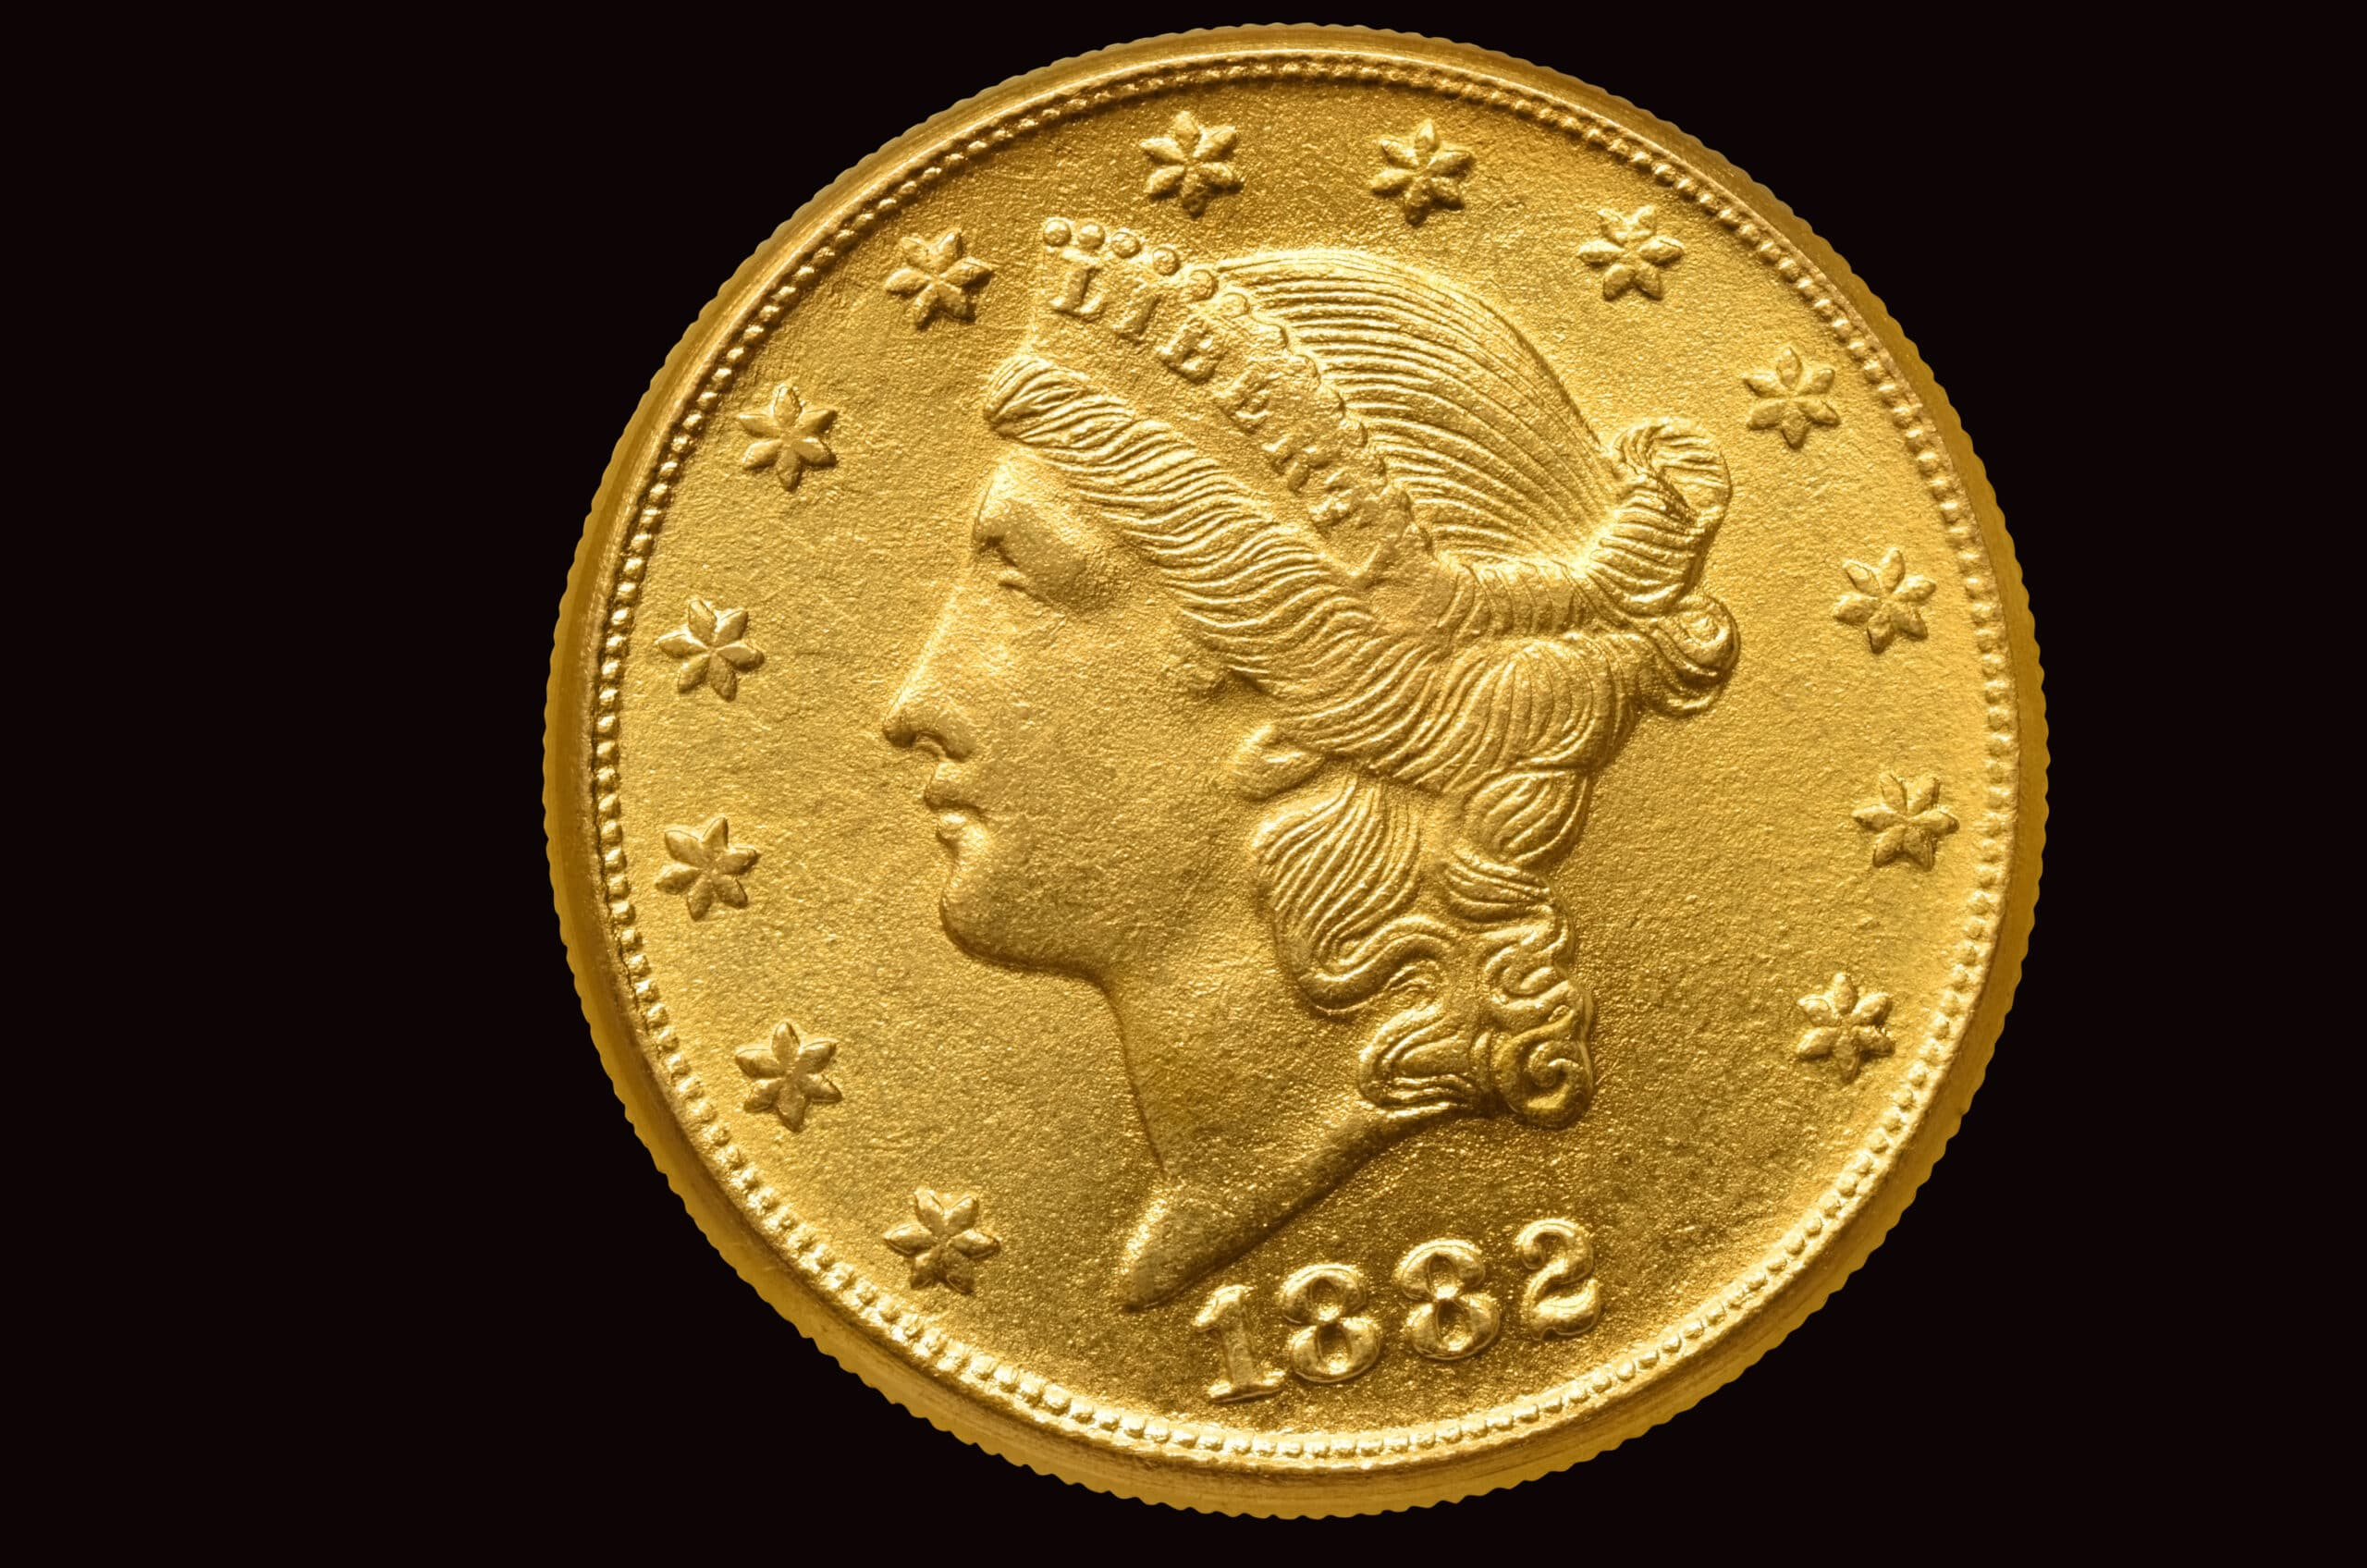 20 Liberty golden dollar coin. Isolated with path on black background